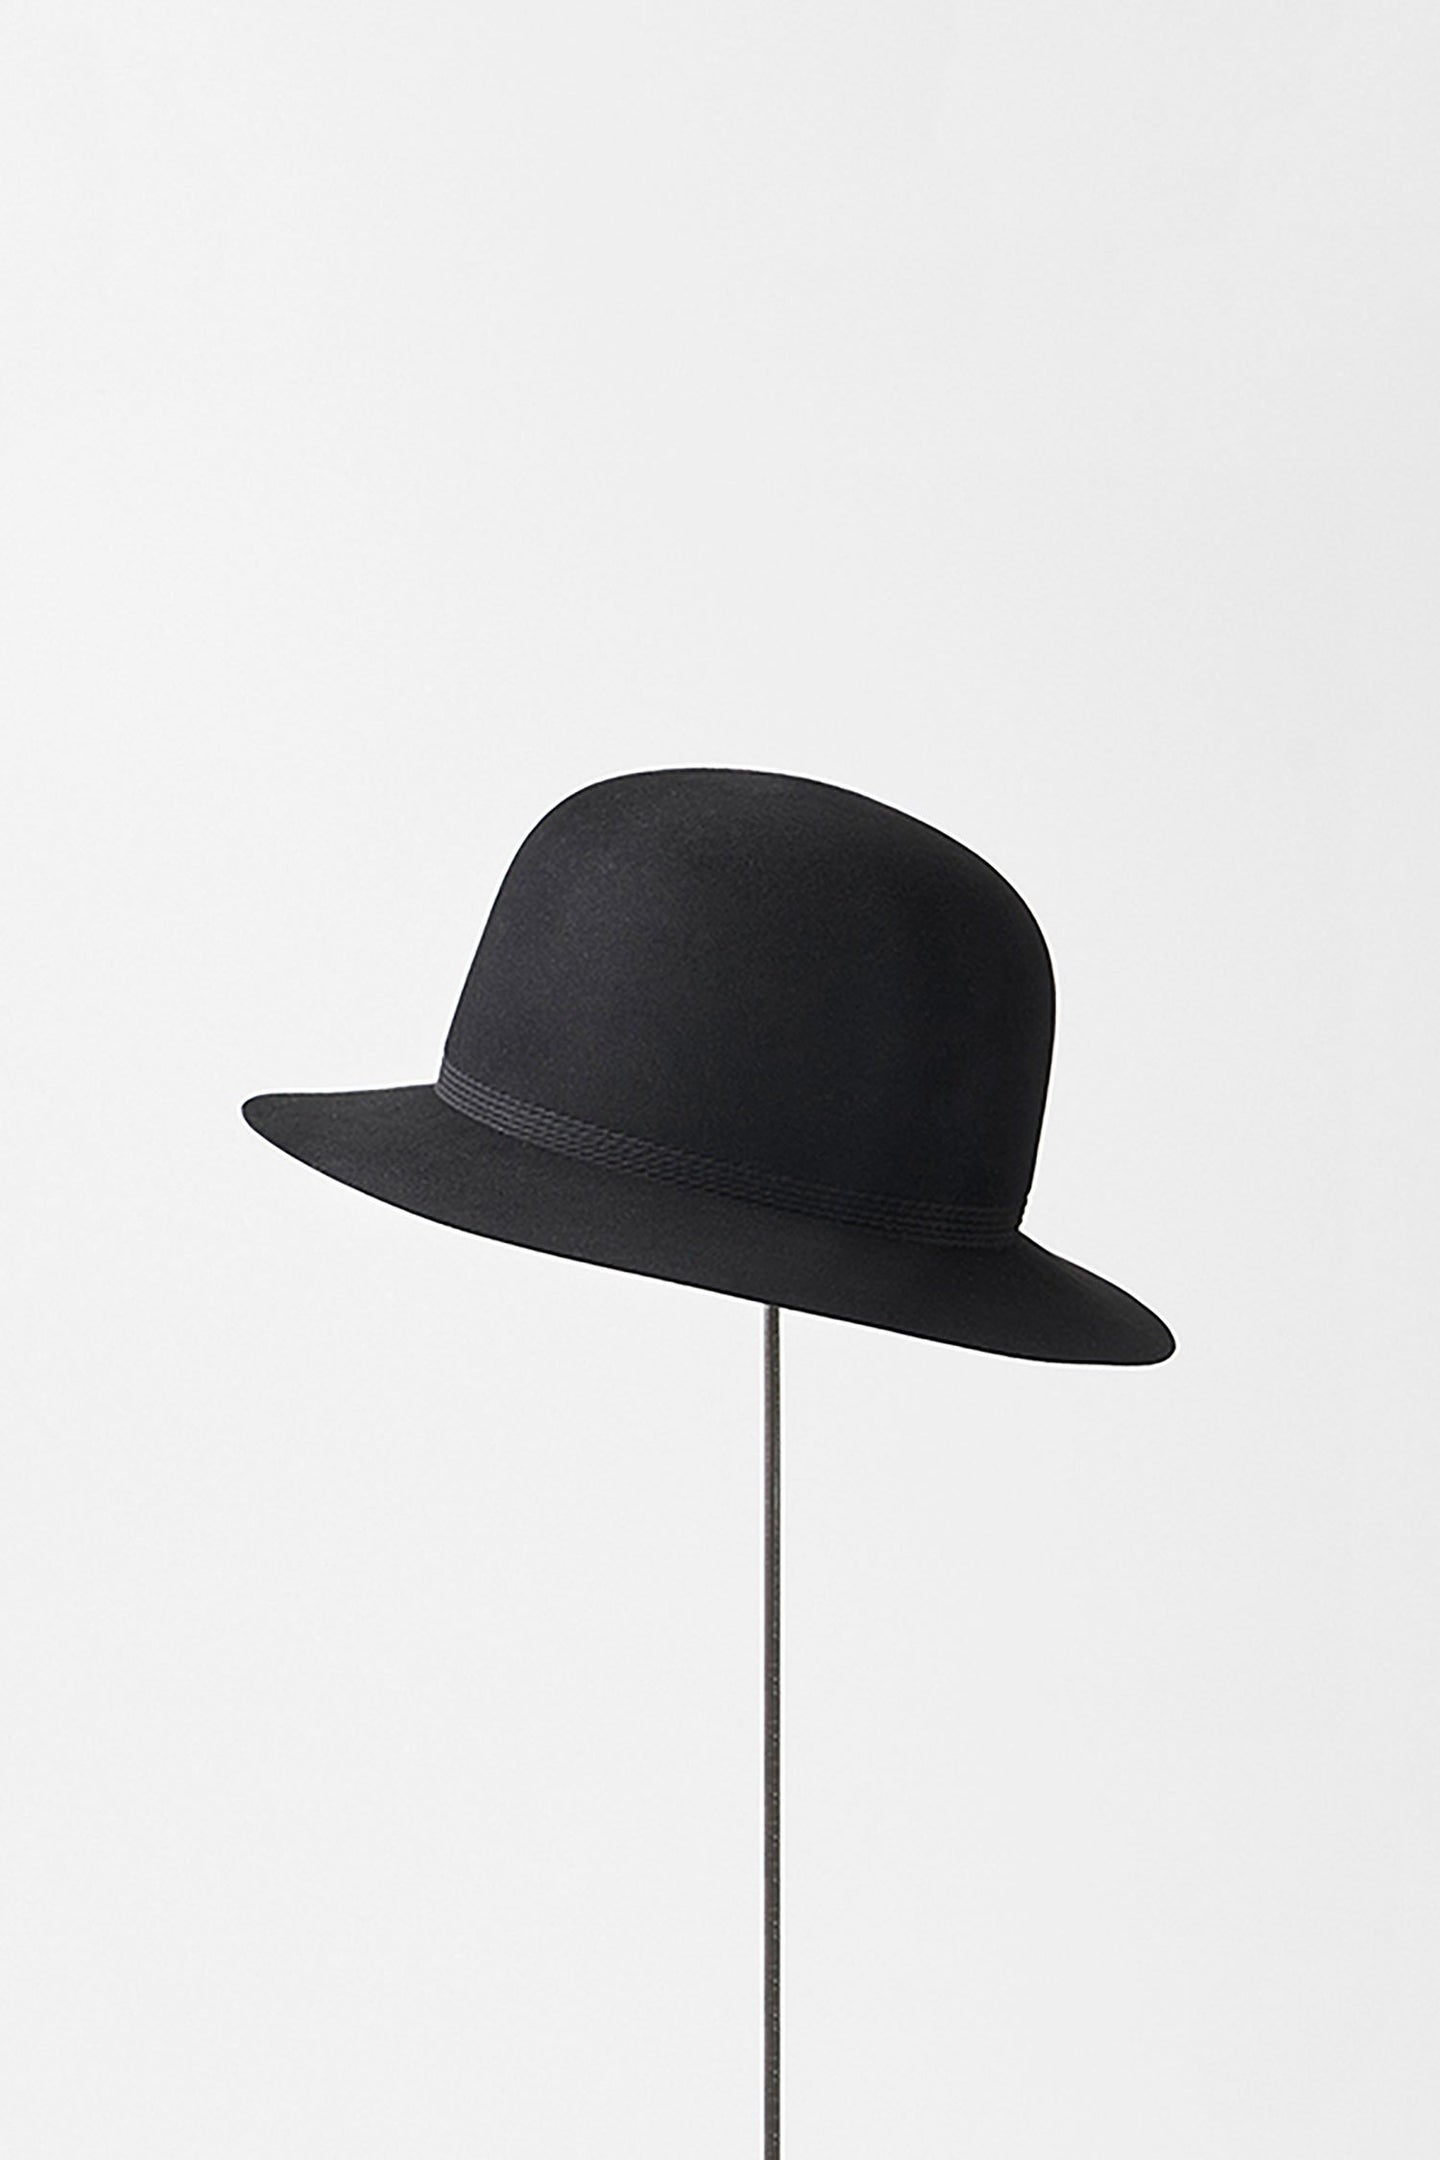 Rope Tracks Hat w Middle Brim in Black by Mature Ha